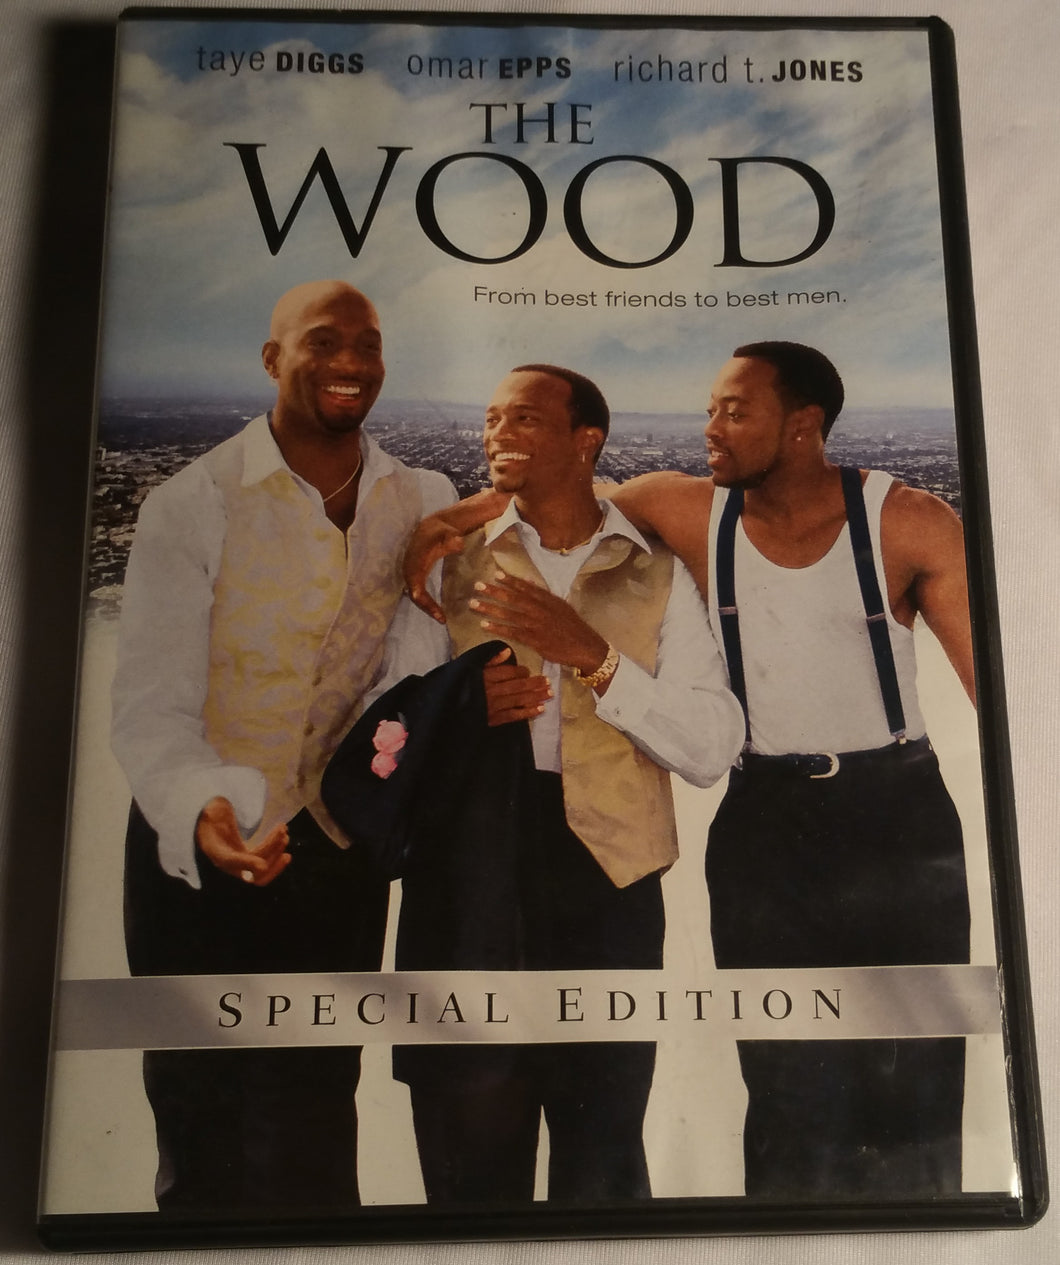 The Wood Starring Taye Diggs and Omar Epps